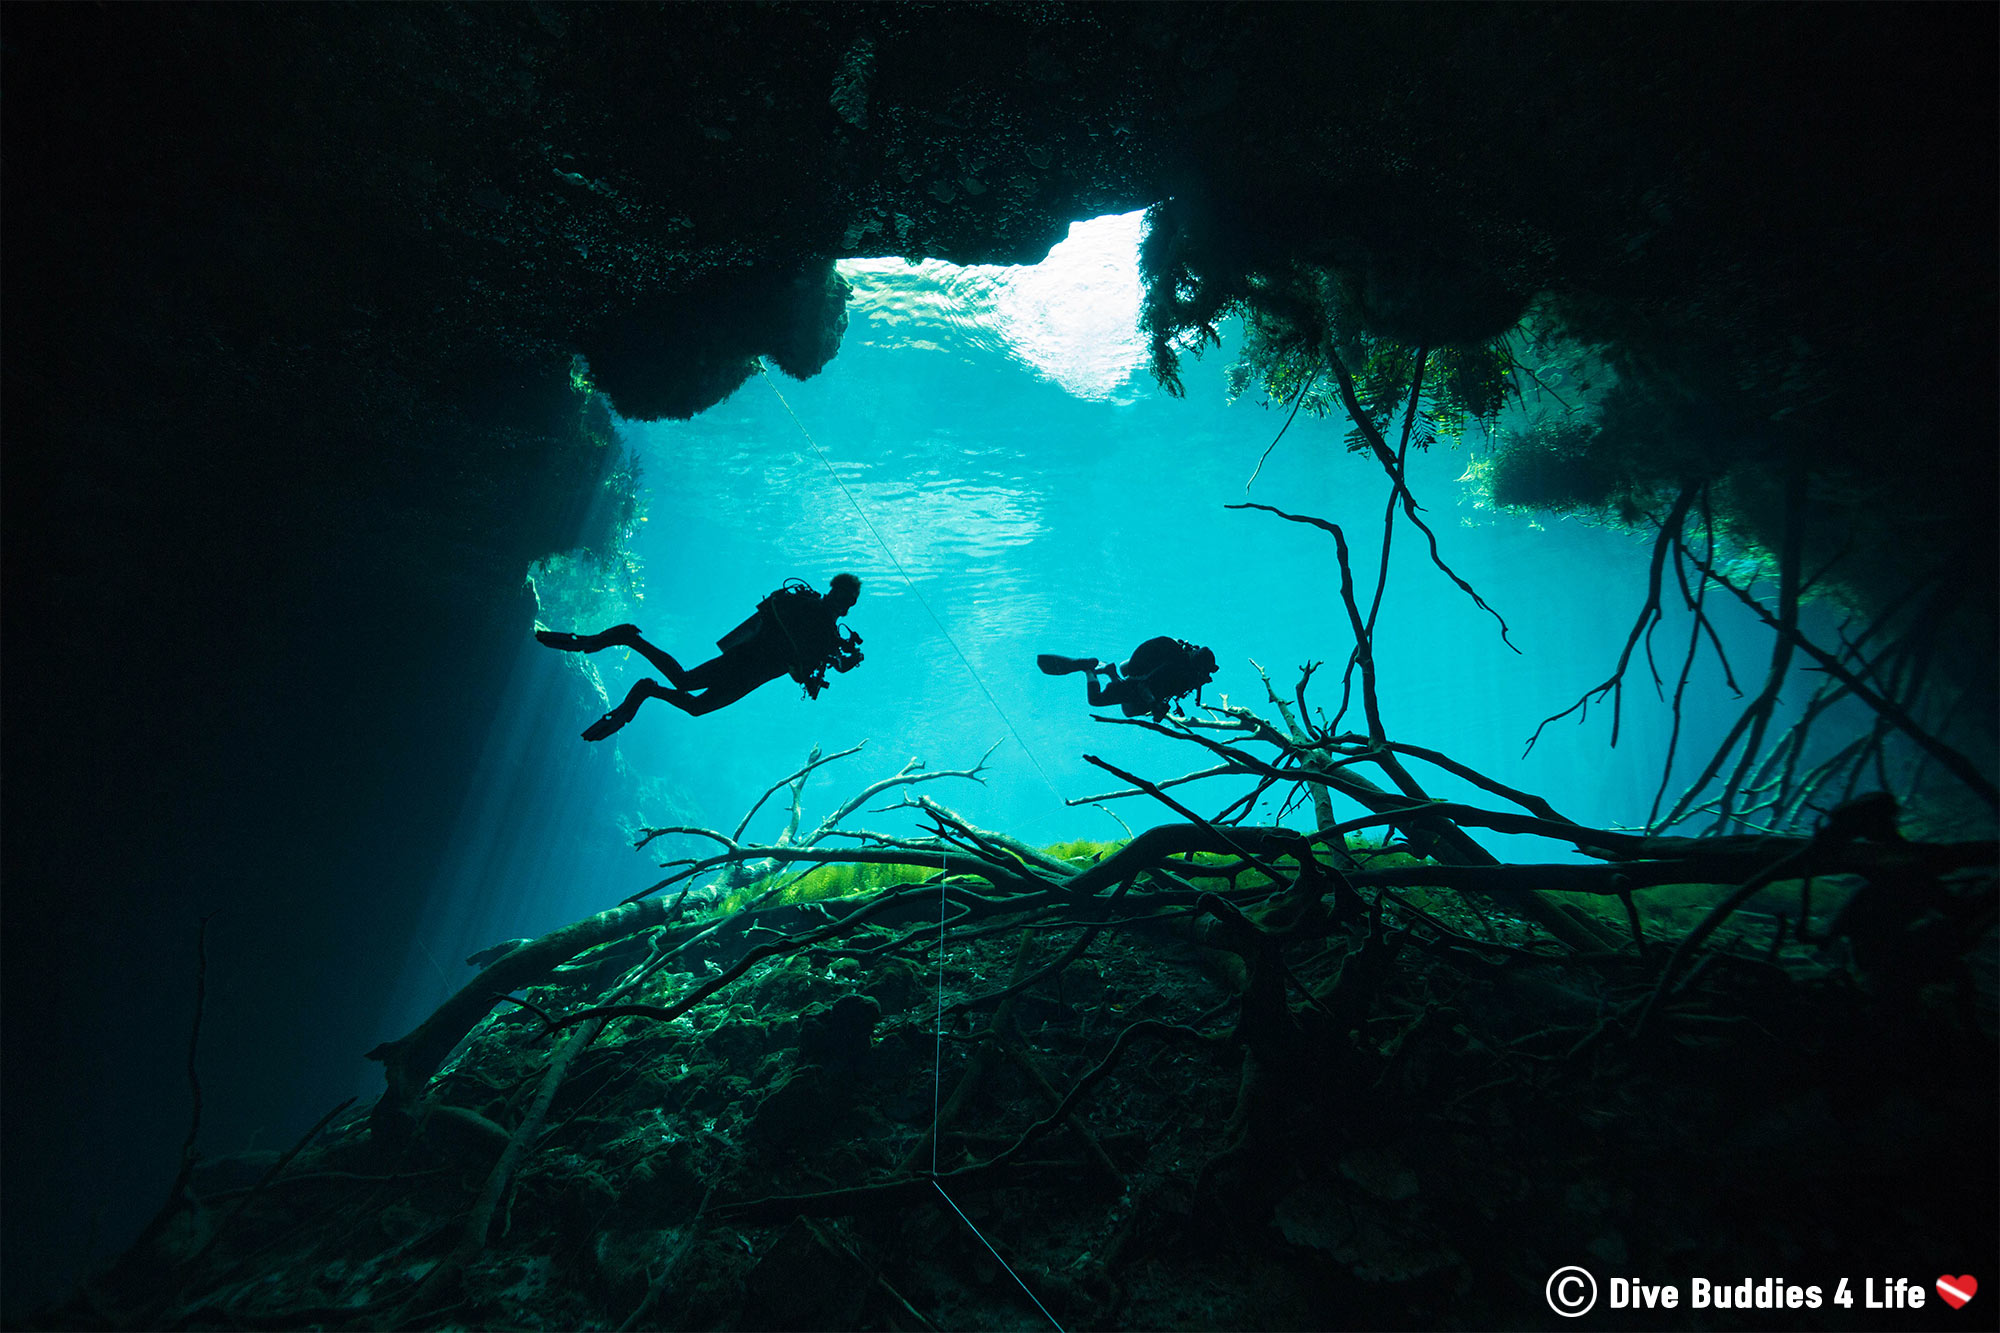 Two Scuba Divers Doing Their Safety Stop On The Line Of Carwash Cenote In Tulum, Mexico